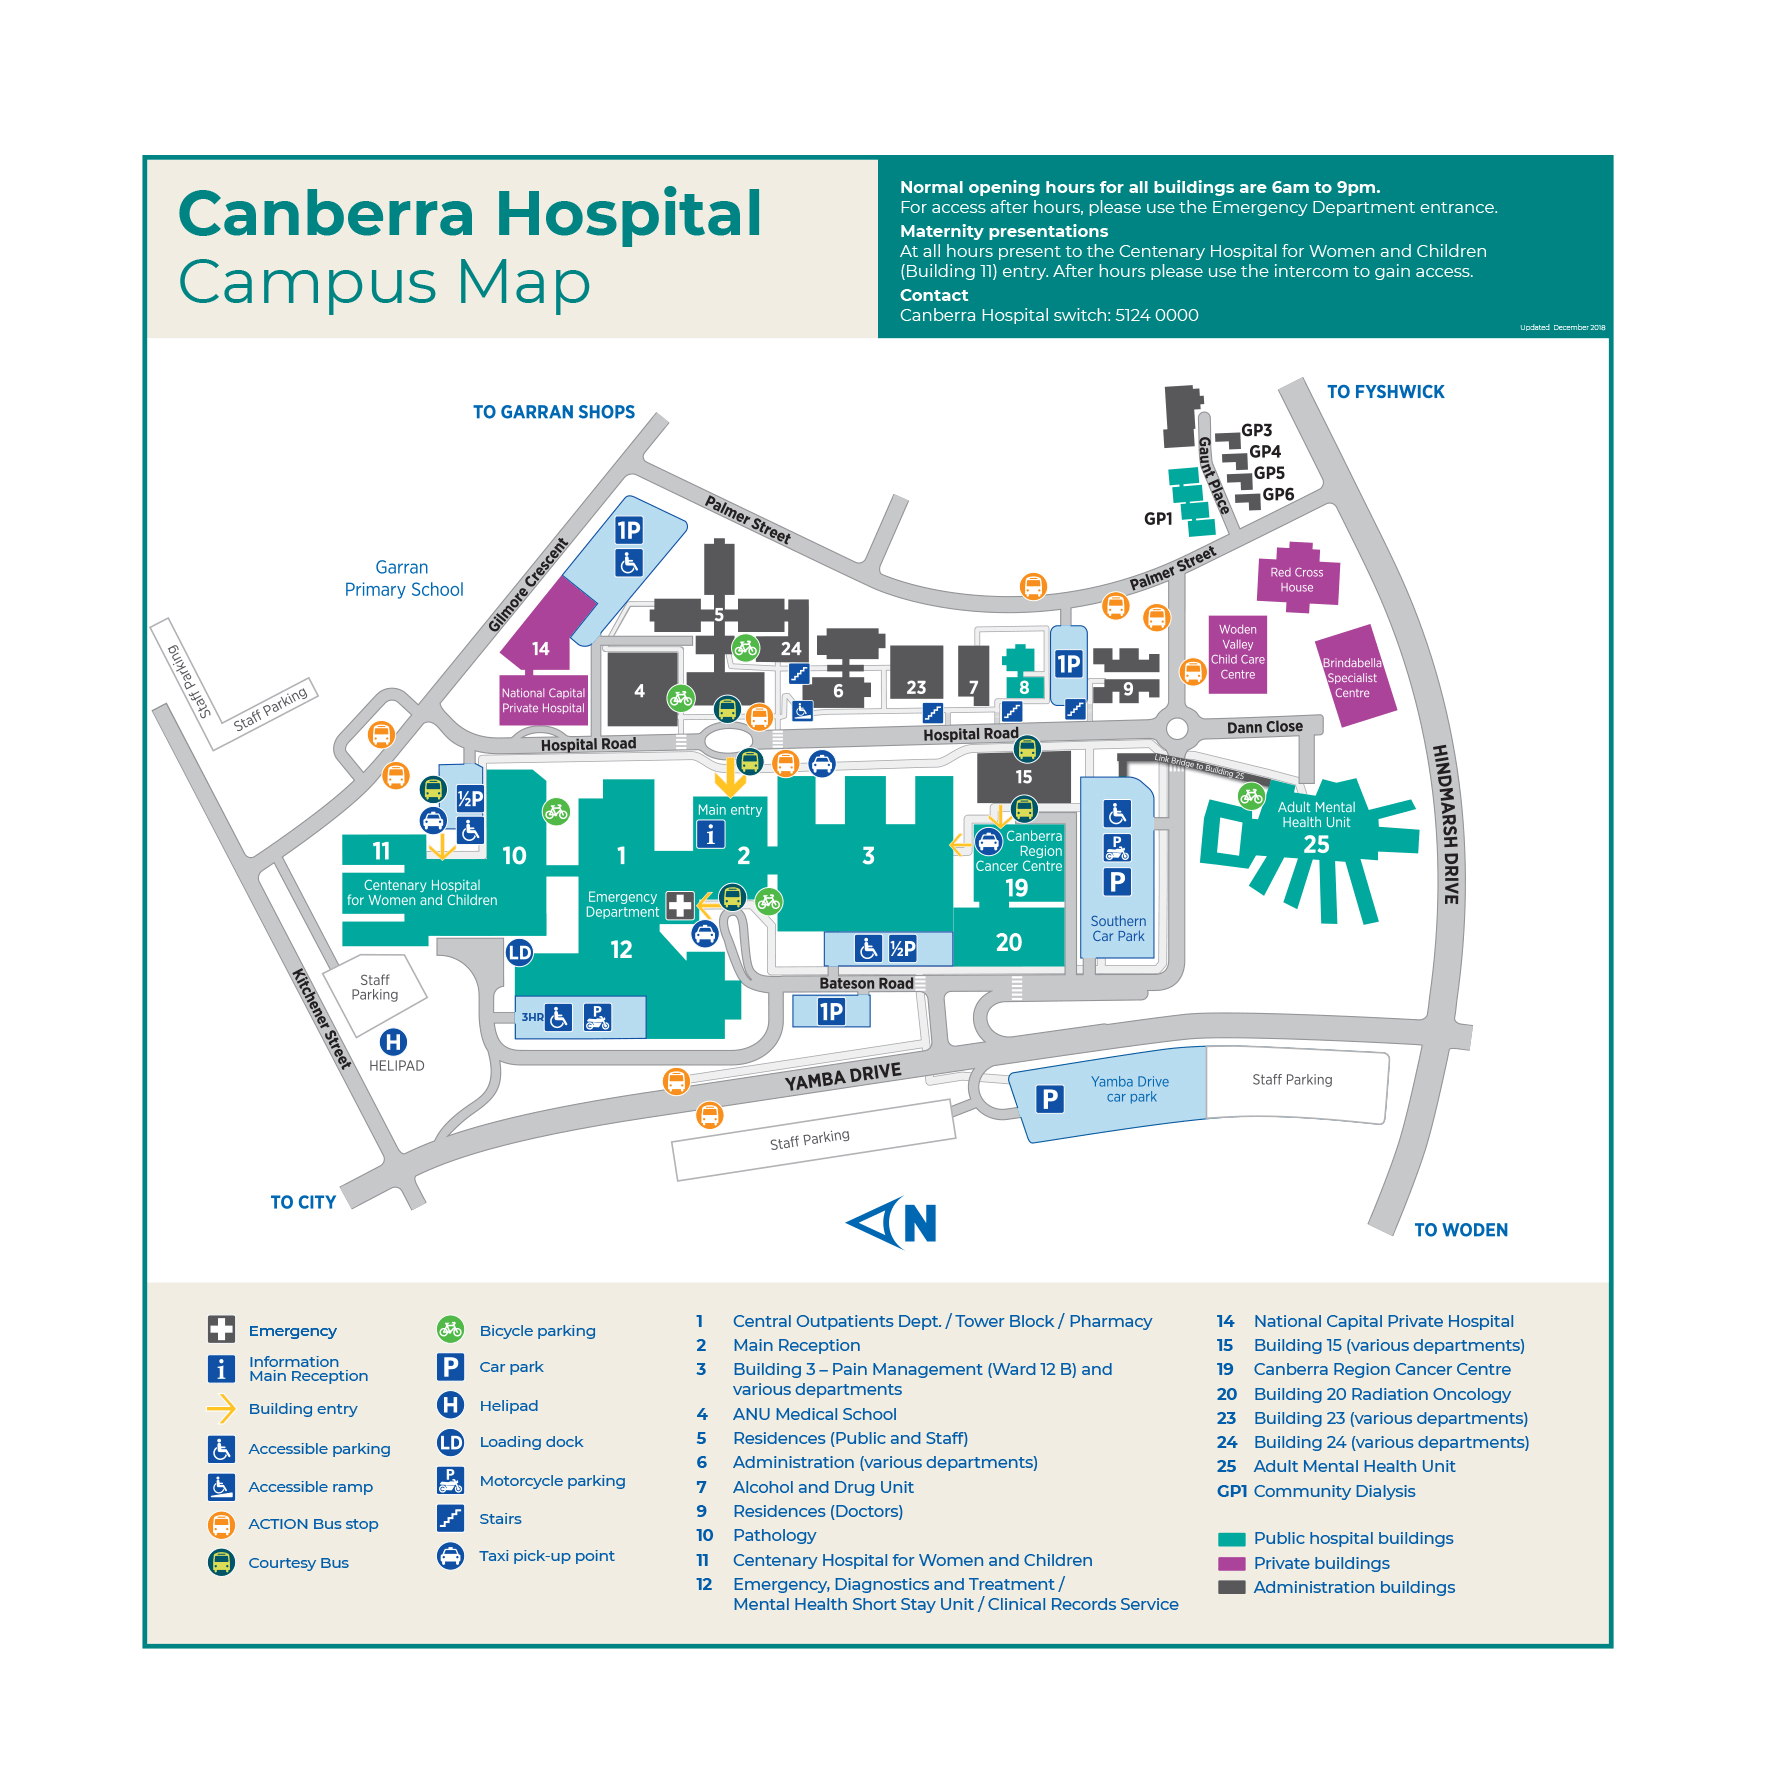 Canberra Hospital Campus Map